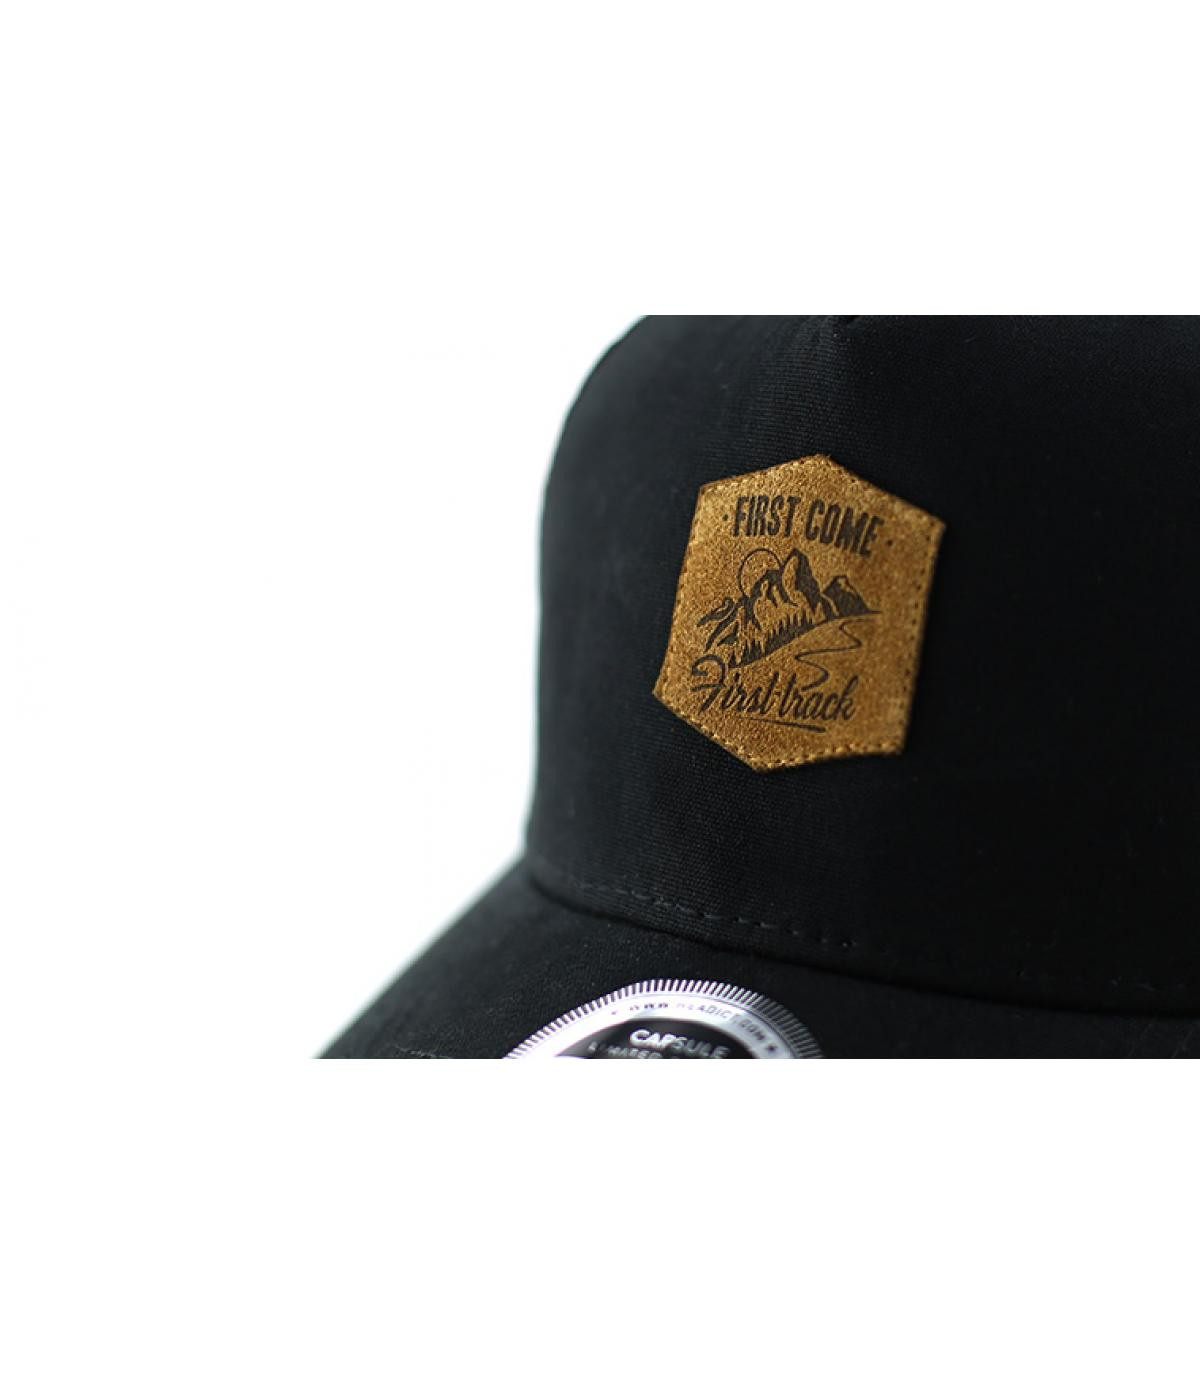 Détails Trucker First Come First Track black - image 3